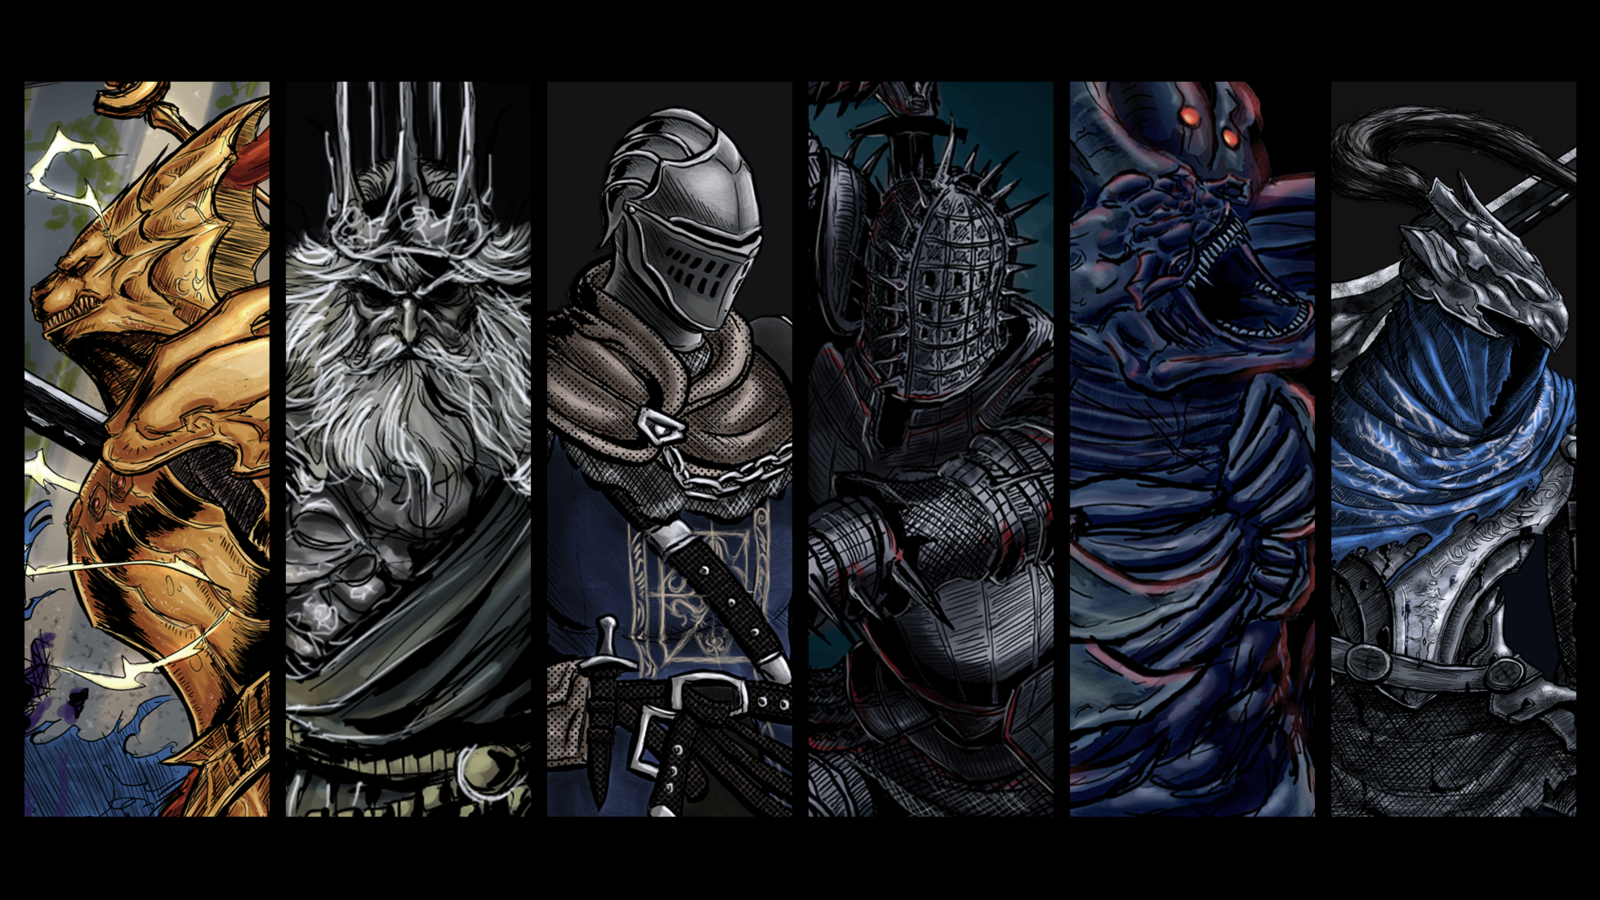 dark souls wallpaper by menaslg fan art digital art painting 1600x900